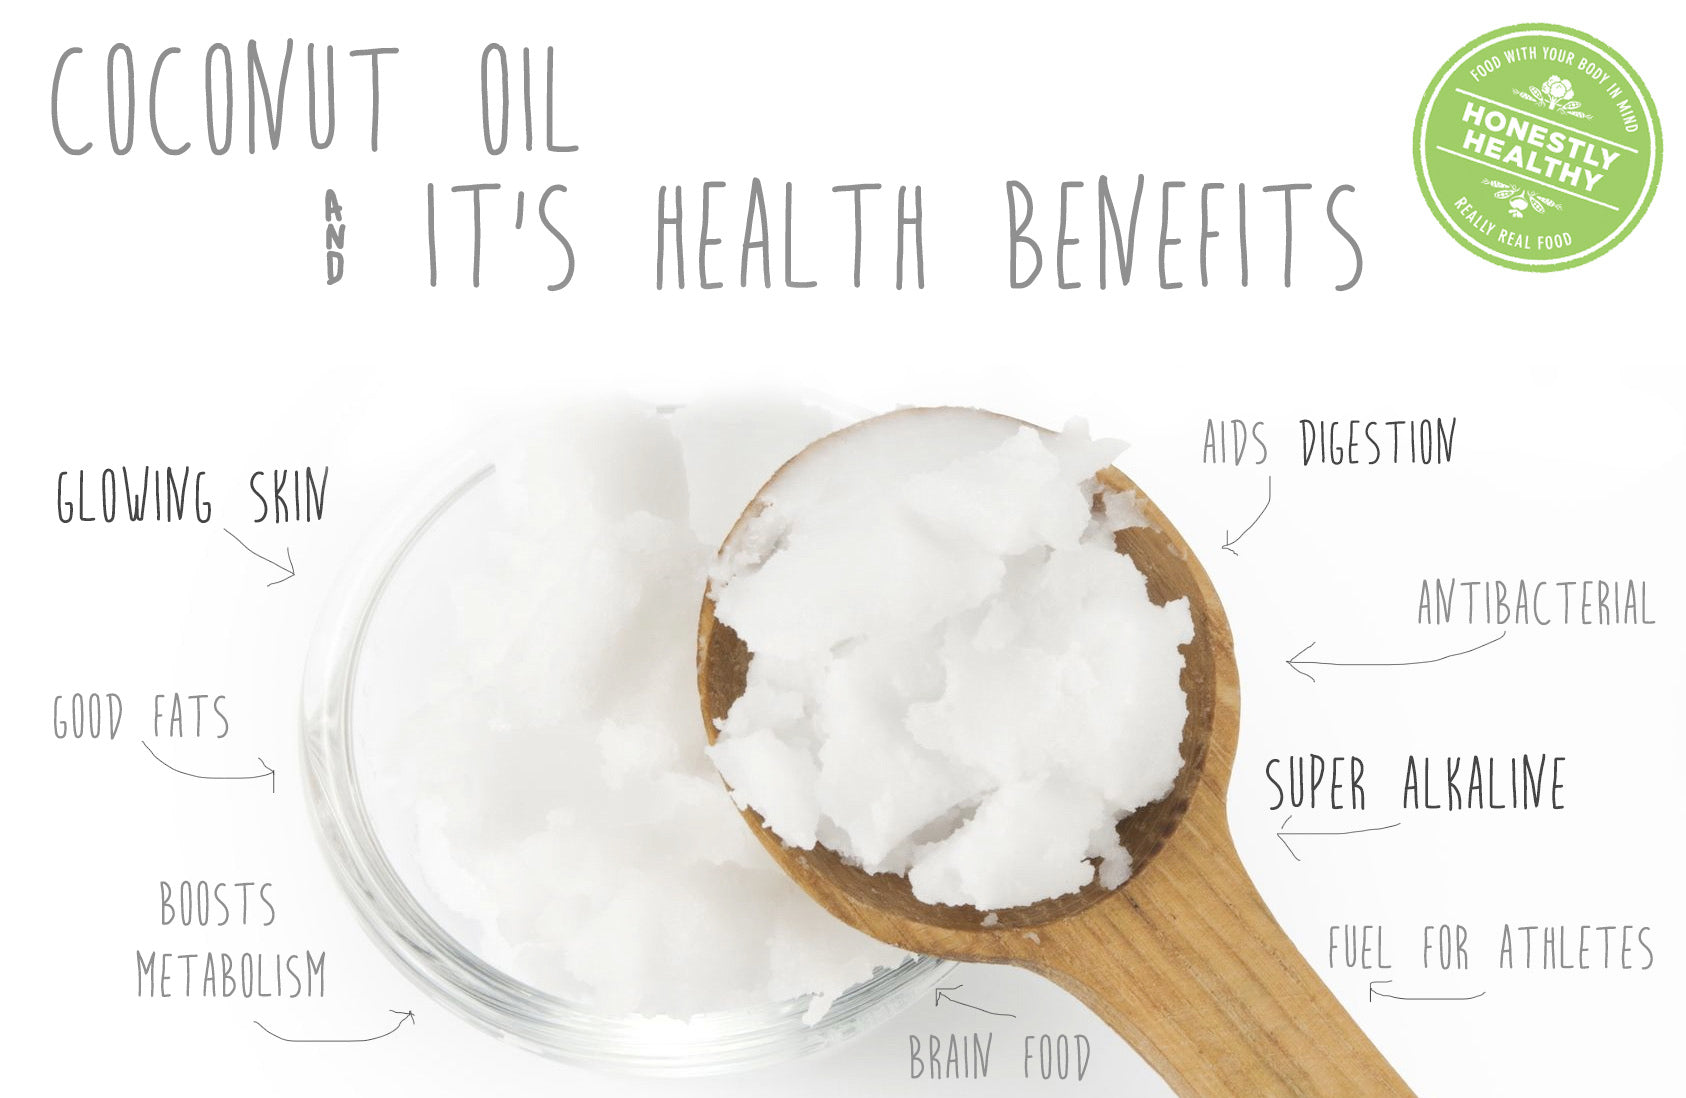 Coonut Oil Health Benefits 1